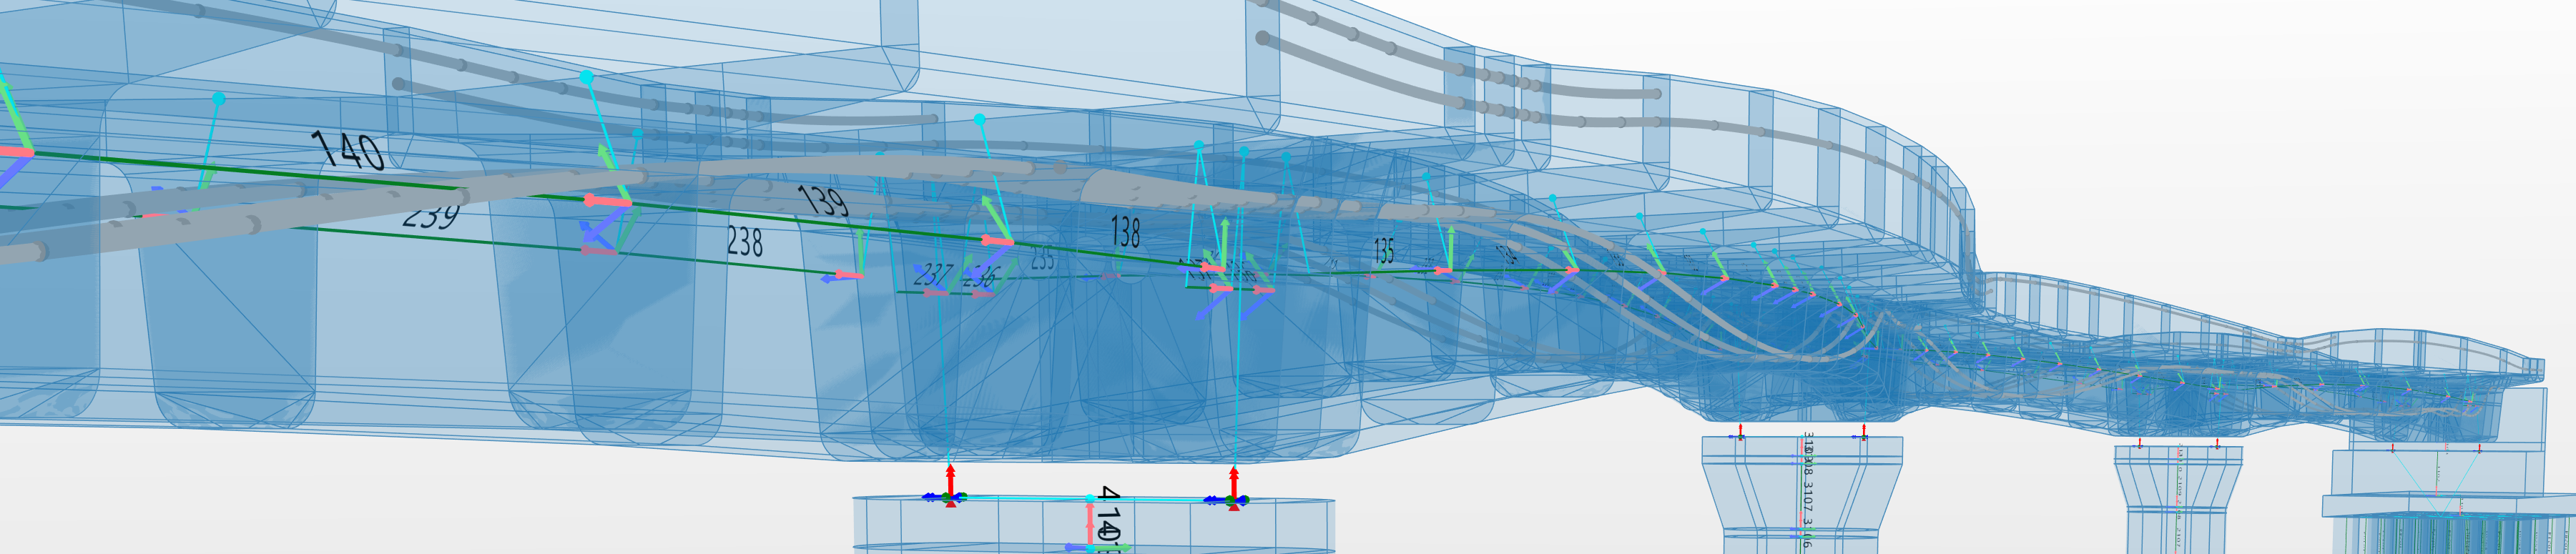 Allplan Bridge: Detailing and rebar modeling